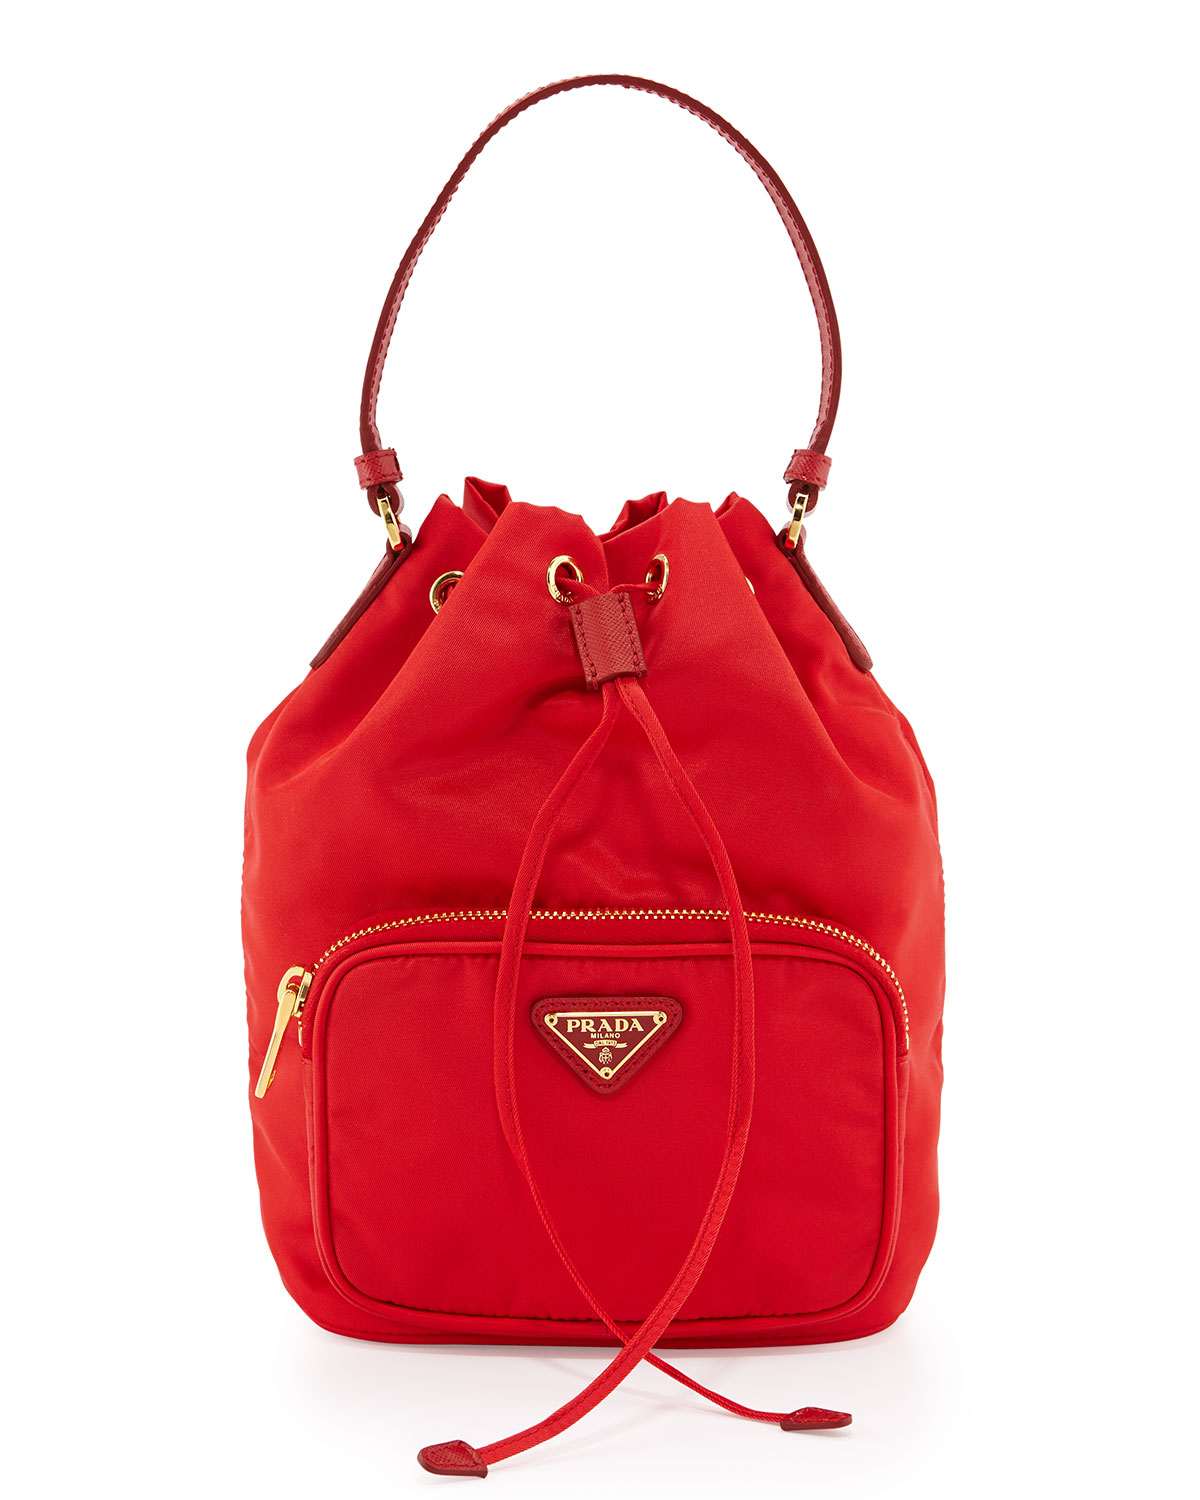 Prada Tessuto Mini Bucket Crossbody Bag